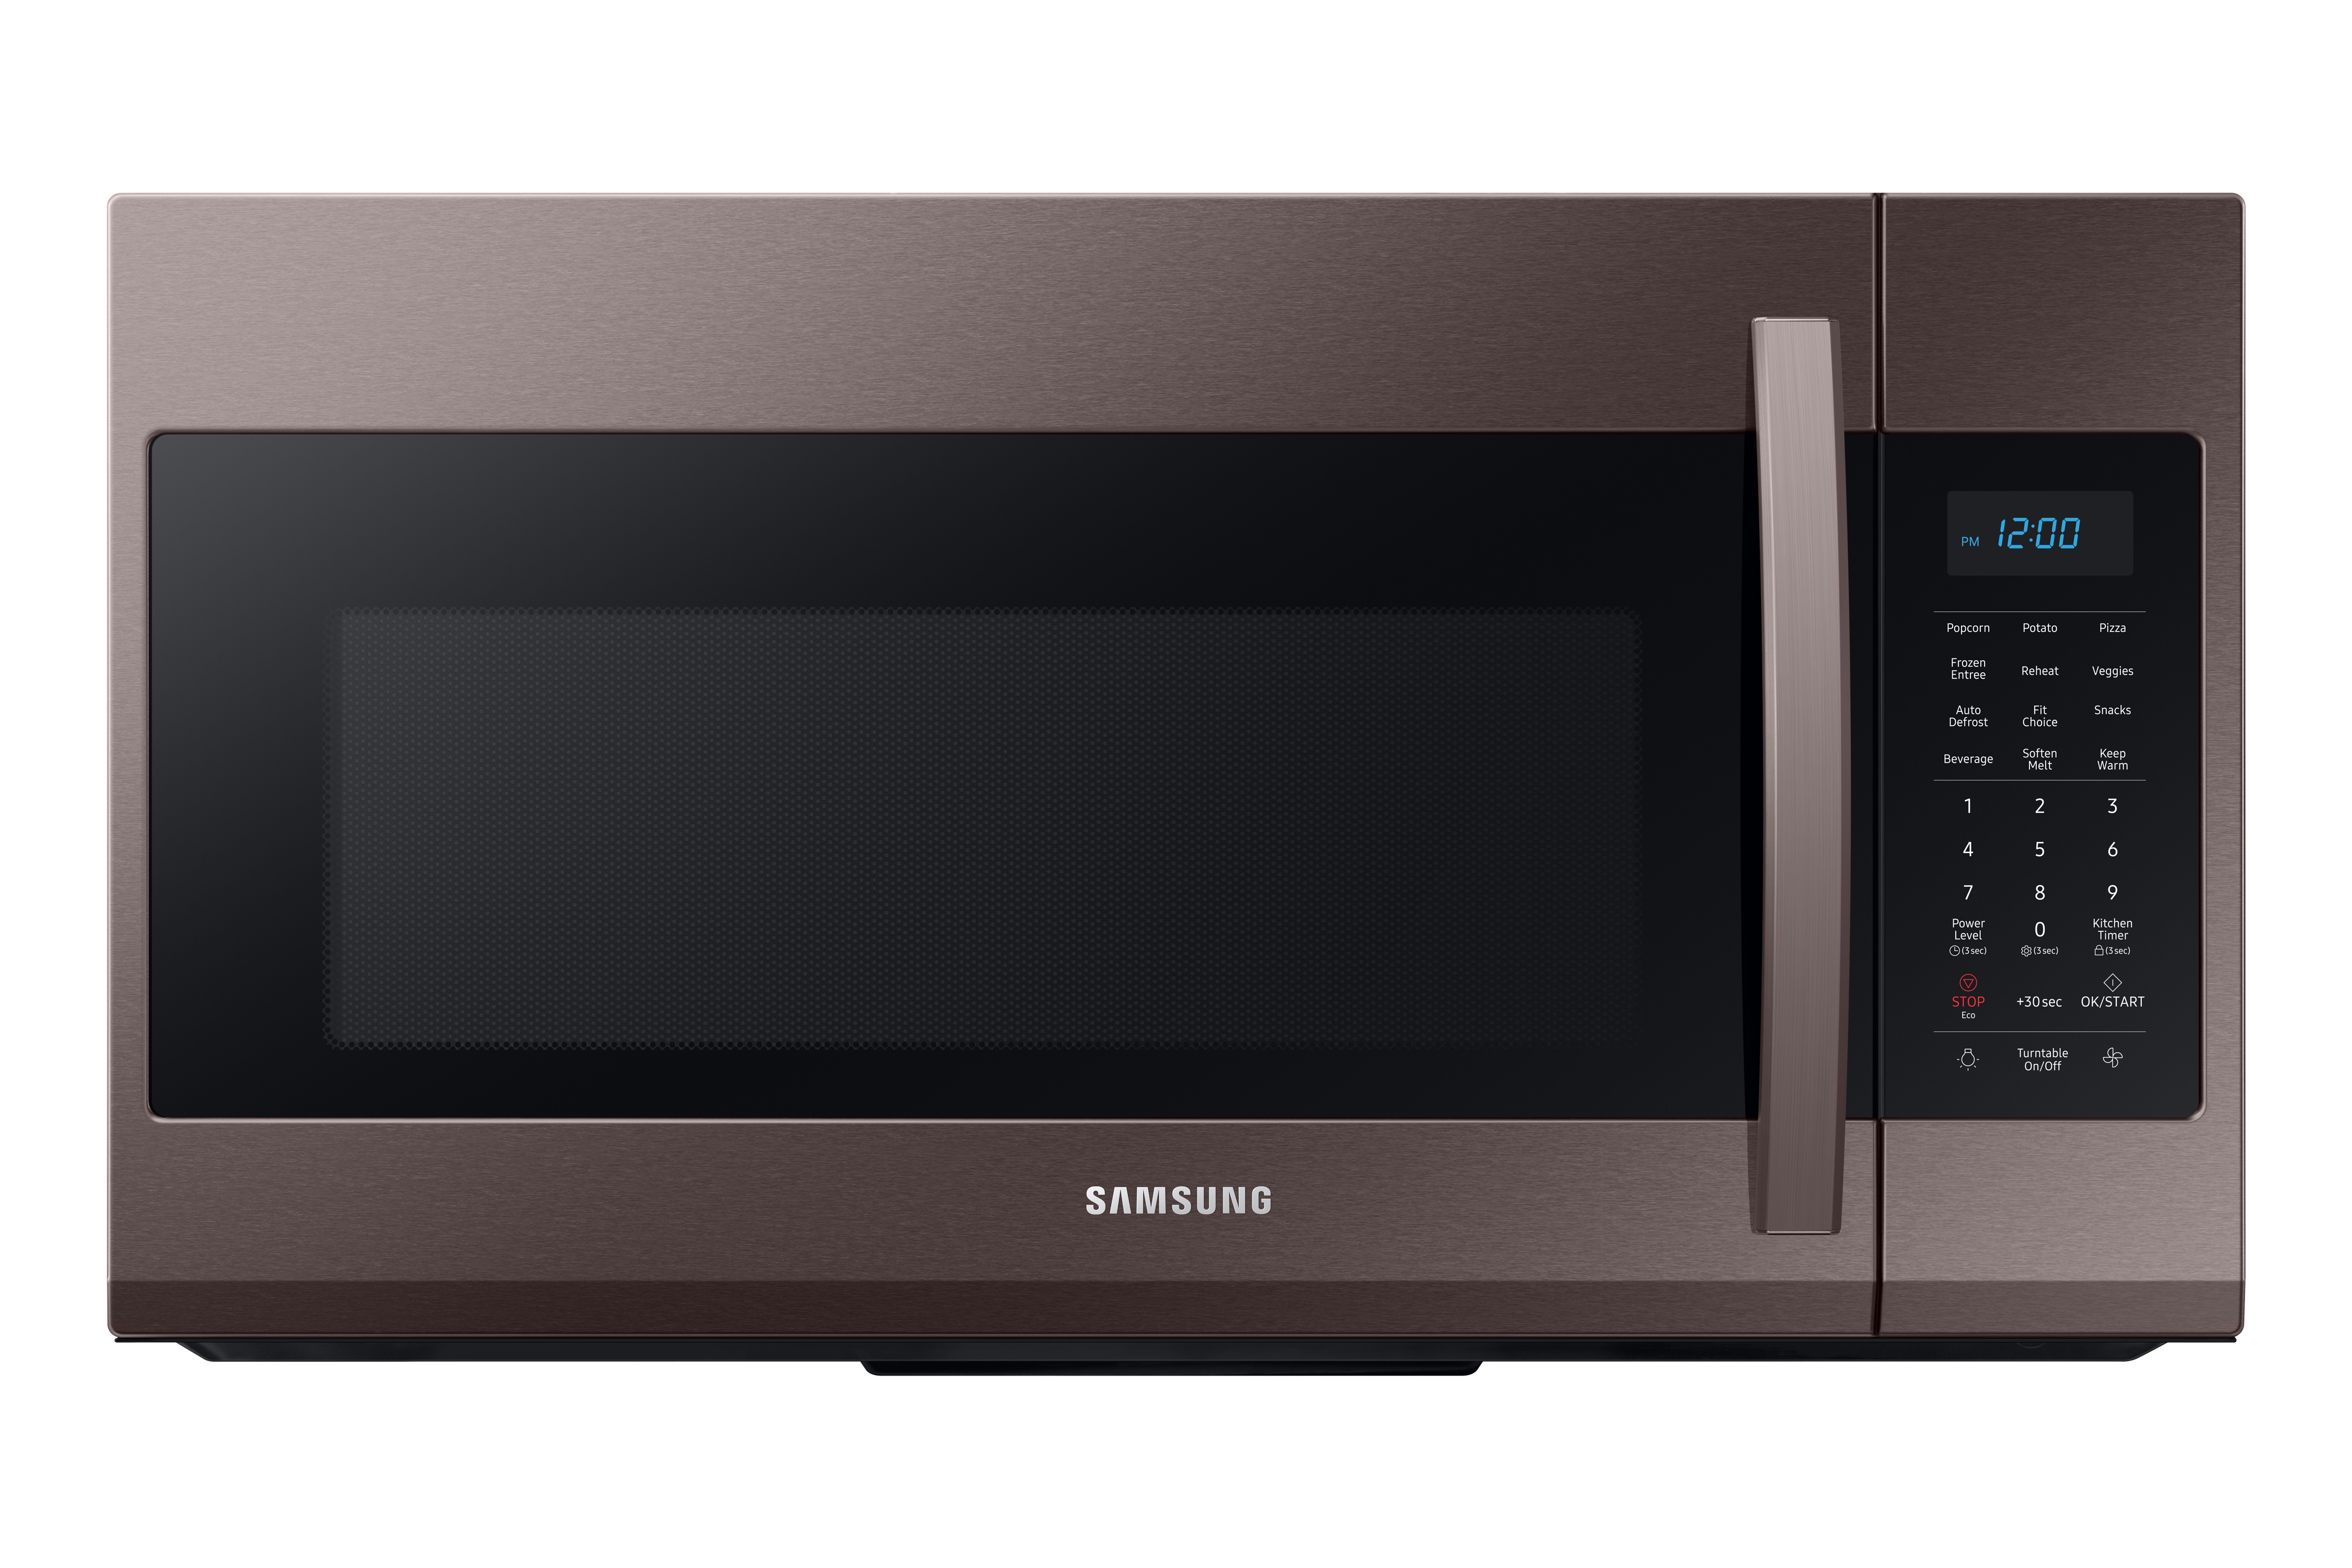 Samsung 1.9 cu ft Over The Range Microwave with Sensor Cooking in Fingerprint Resistant Tuscan Stainless Steel